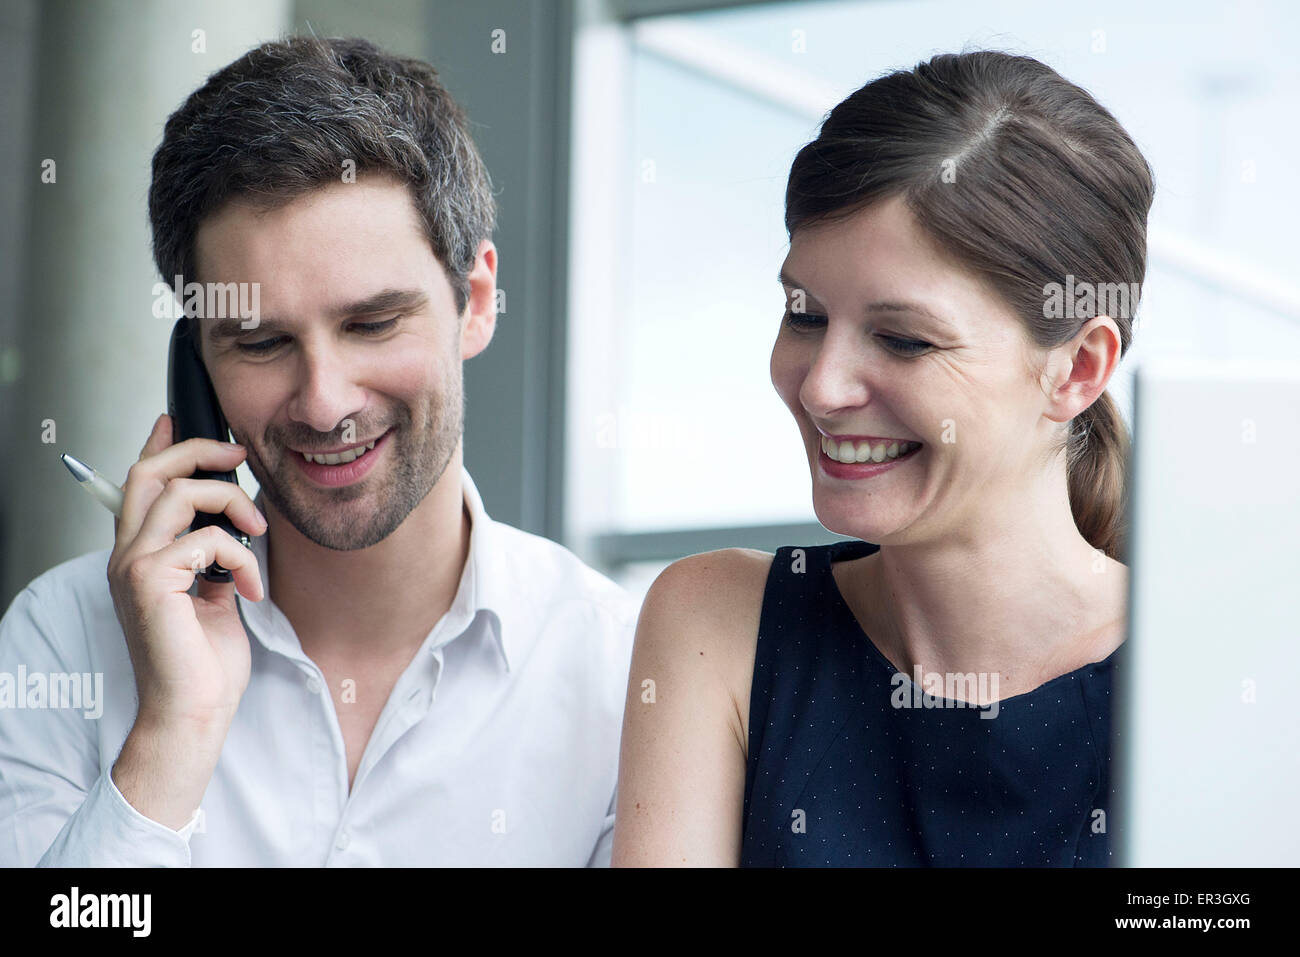 Des collègues d'affaires smiling together, man talking on cell phone Photo Stock